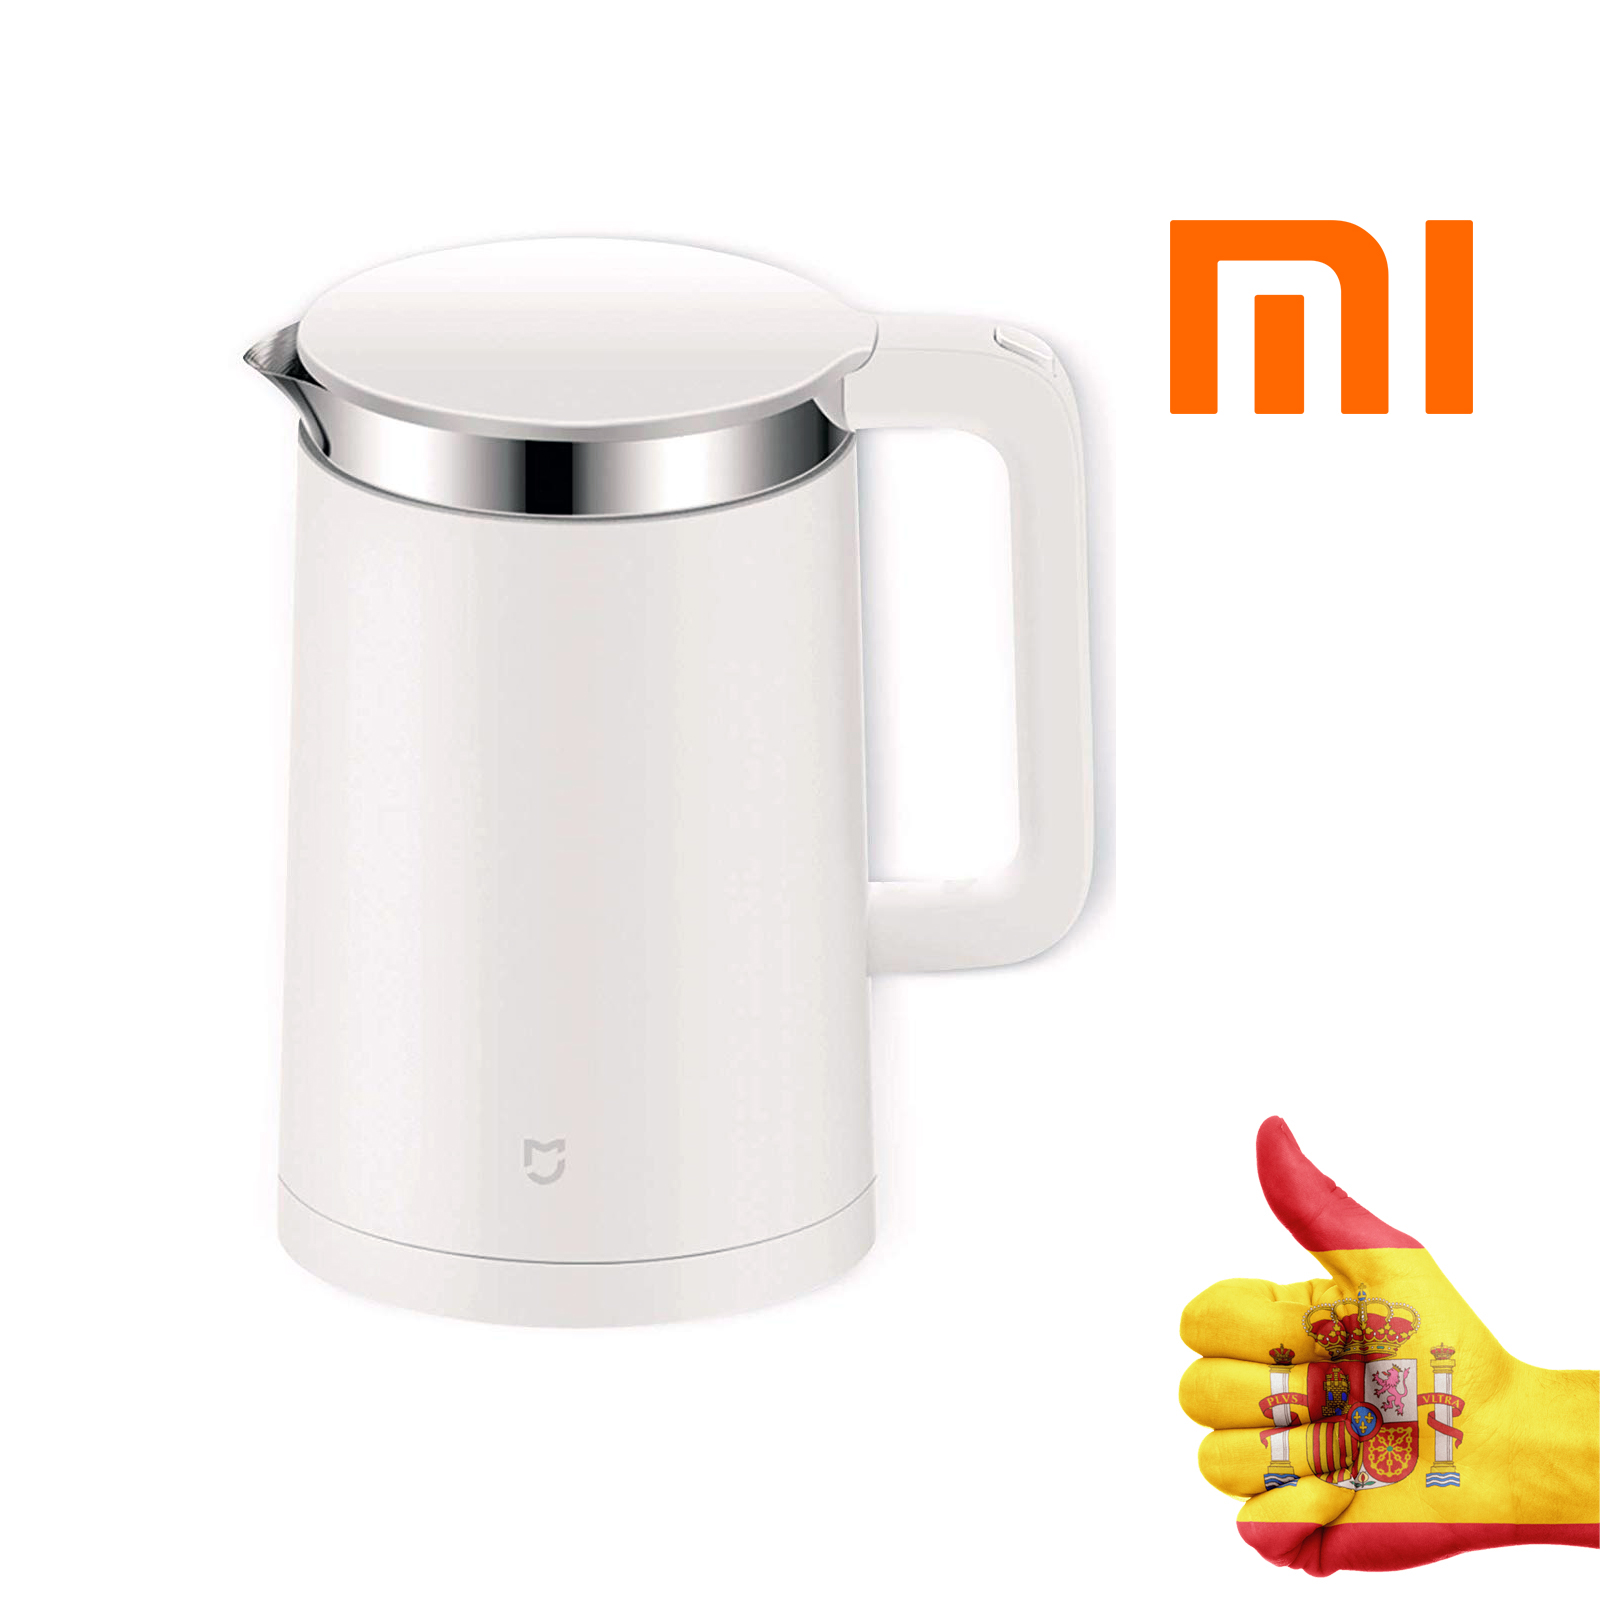 Xiaomi MIJIA Kettle Maker Electric Smart Constant Temperature Control Kitchen Water Kettle Samovar 1.5L Isolation Tea